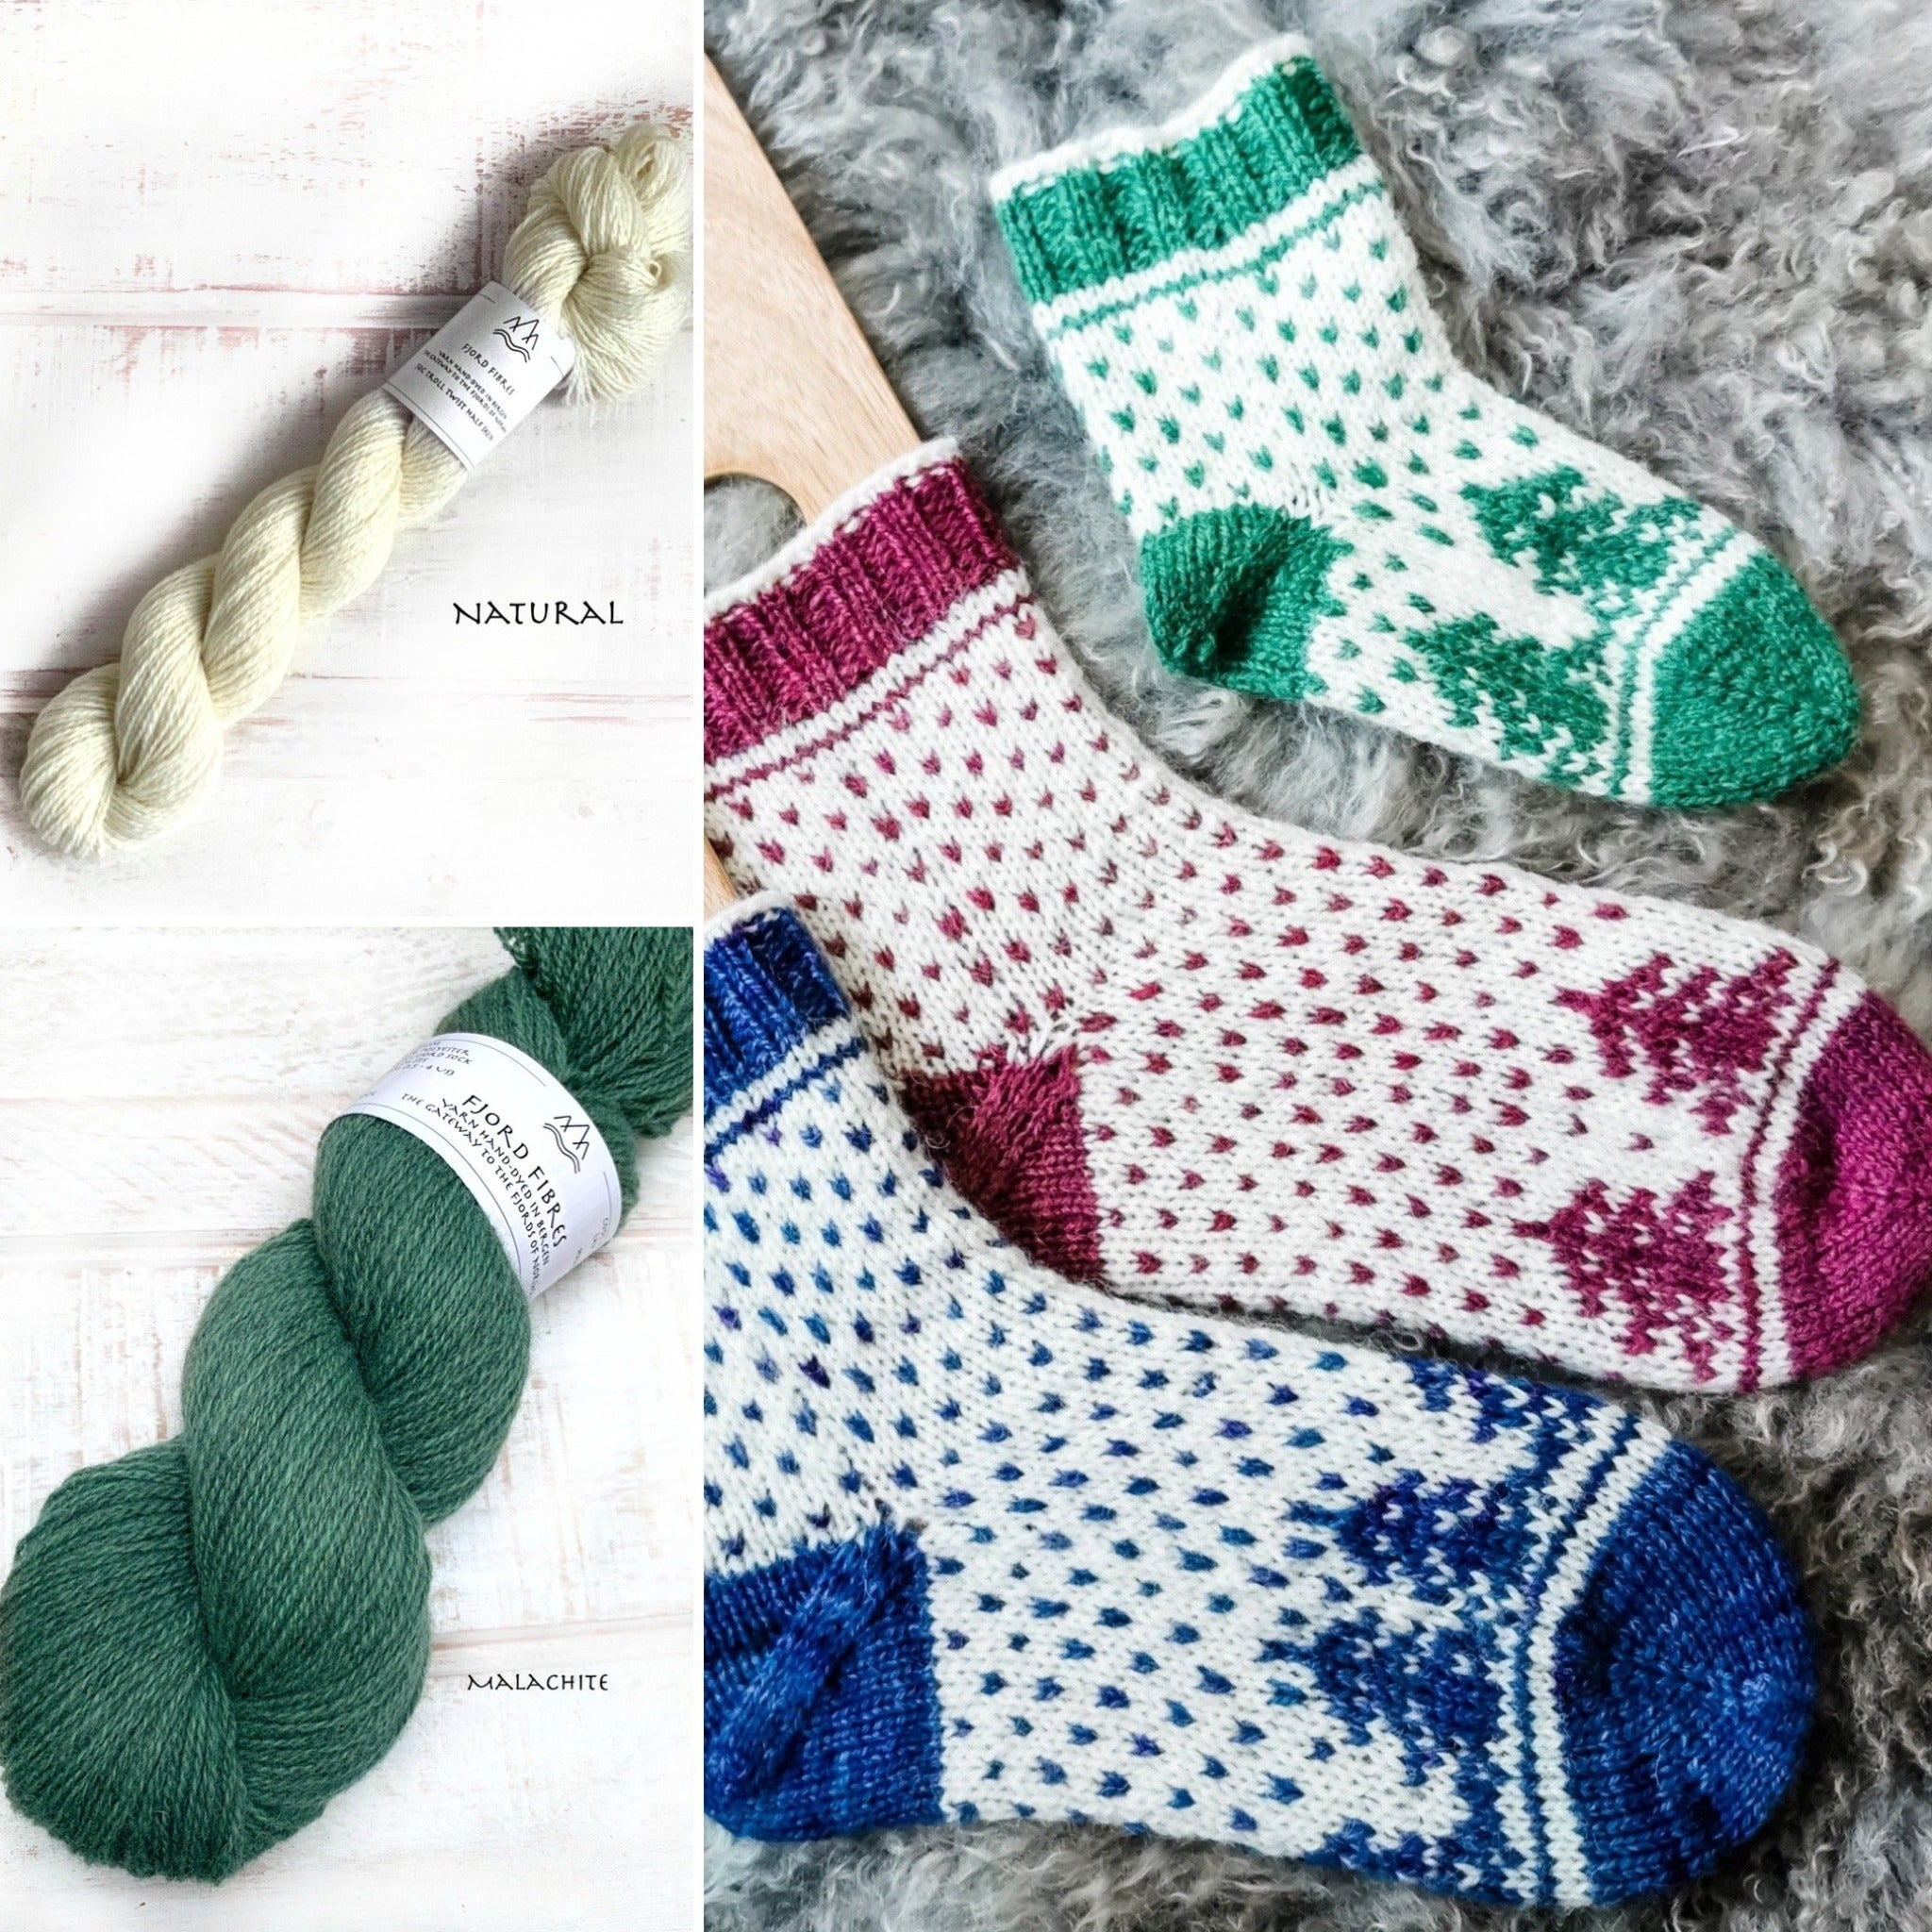 Christmas is coming socks - Yarn Kit - Malachite/Natural - Yarn and Printed Pattern in English/Norwegian